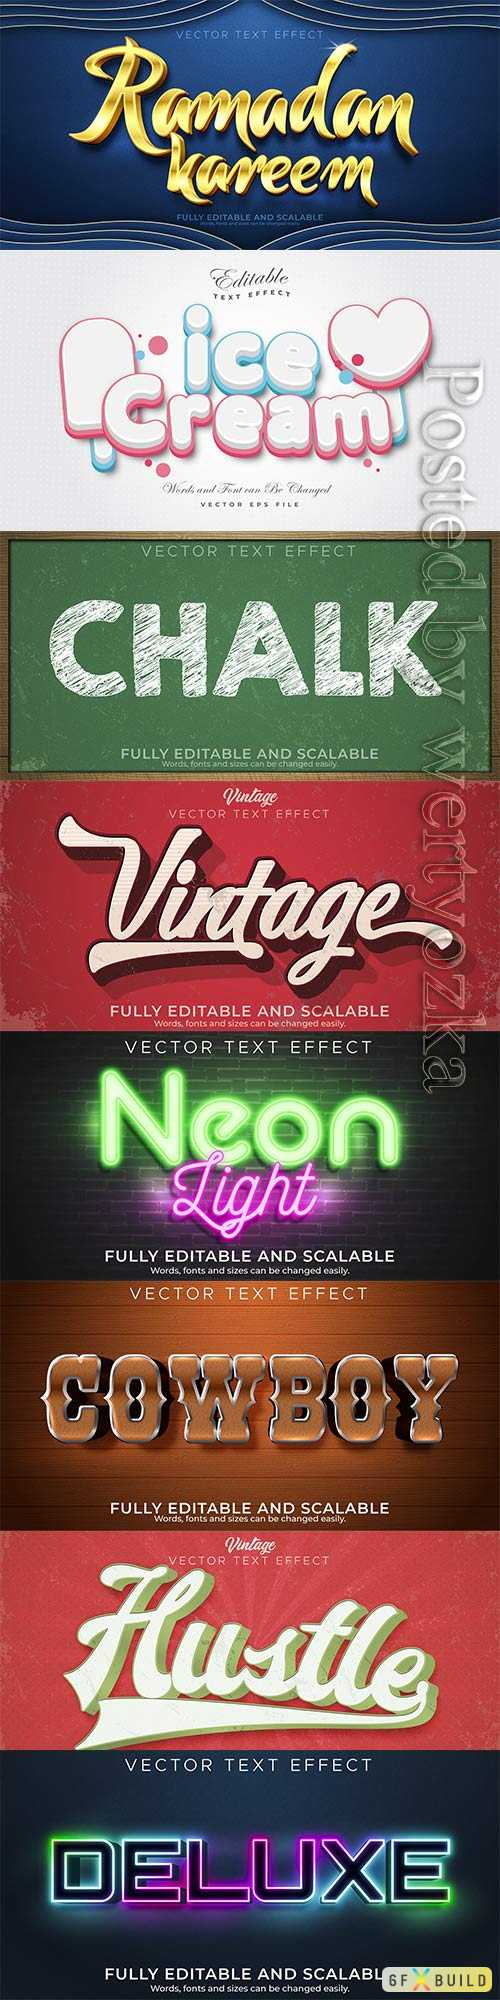 3d editable text style effect vector vol 341